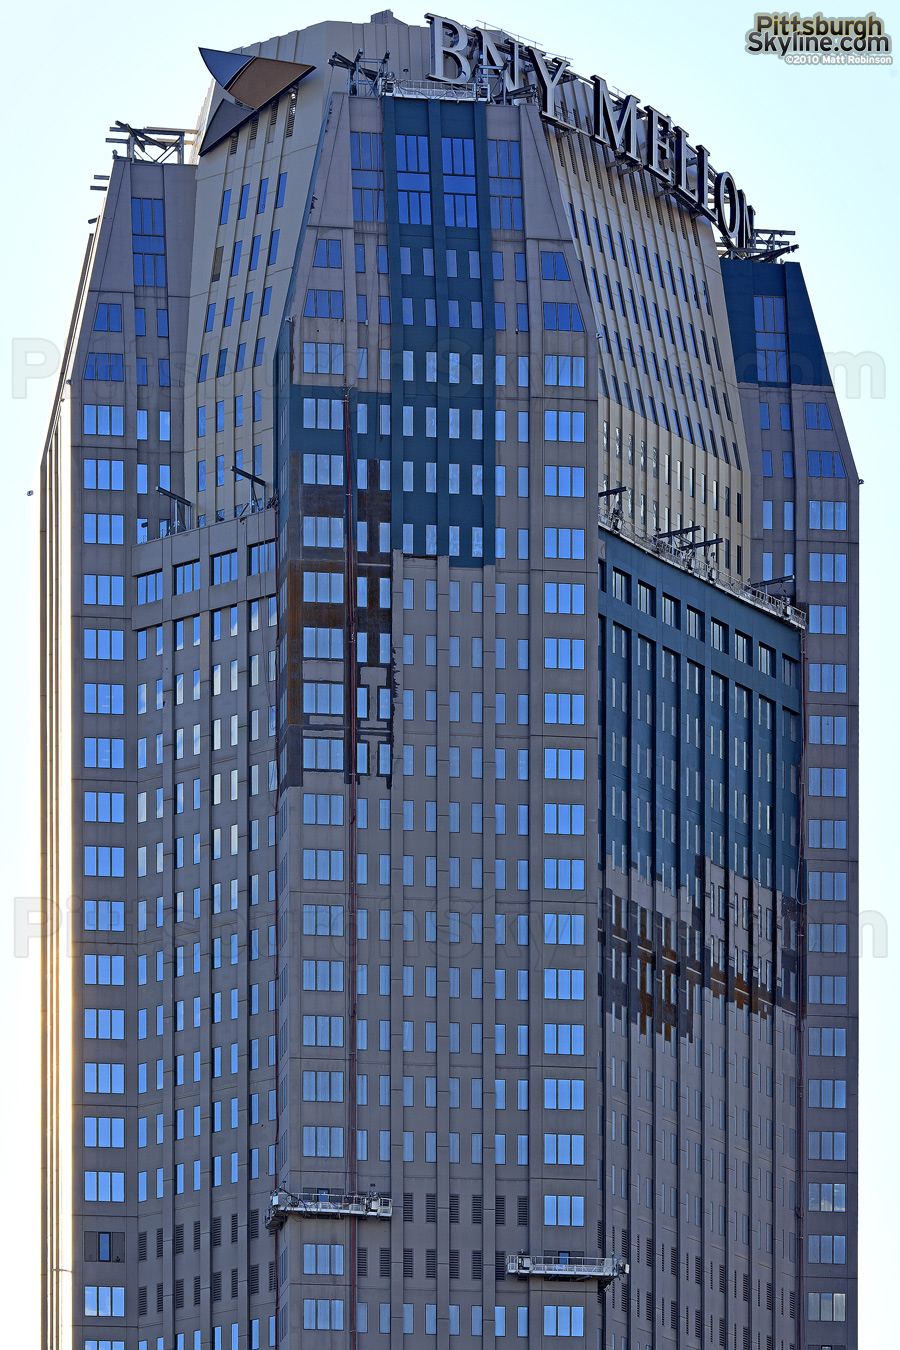 BNY Mellon Center gets new rooftop signage (along with a bronze paint job)